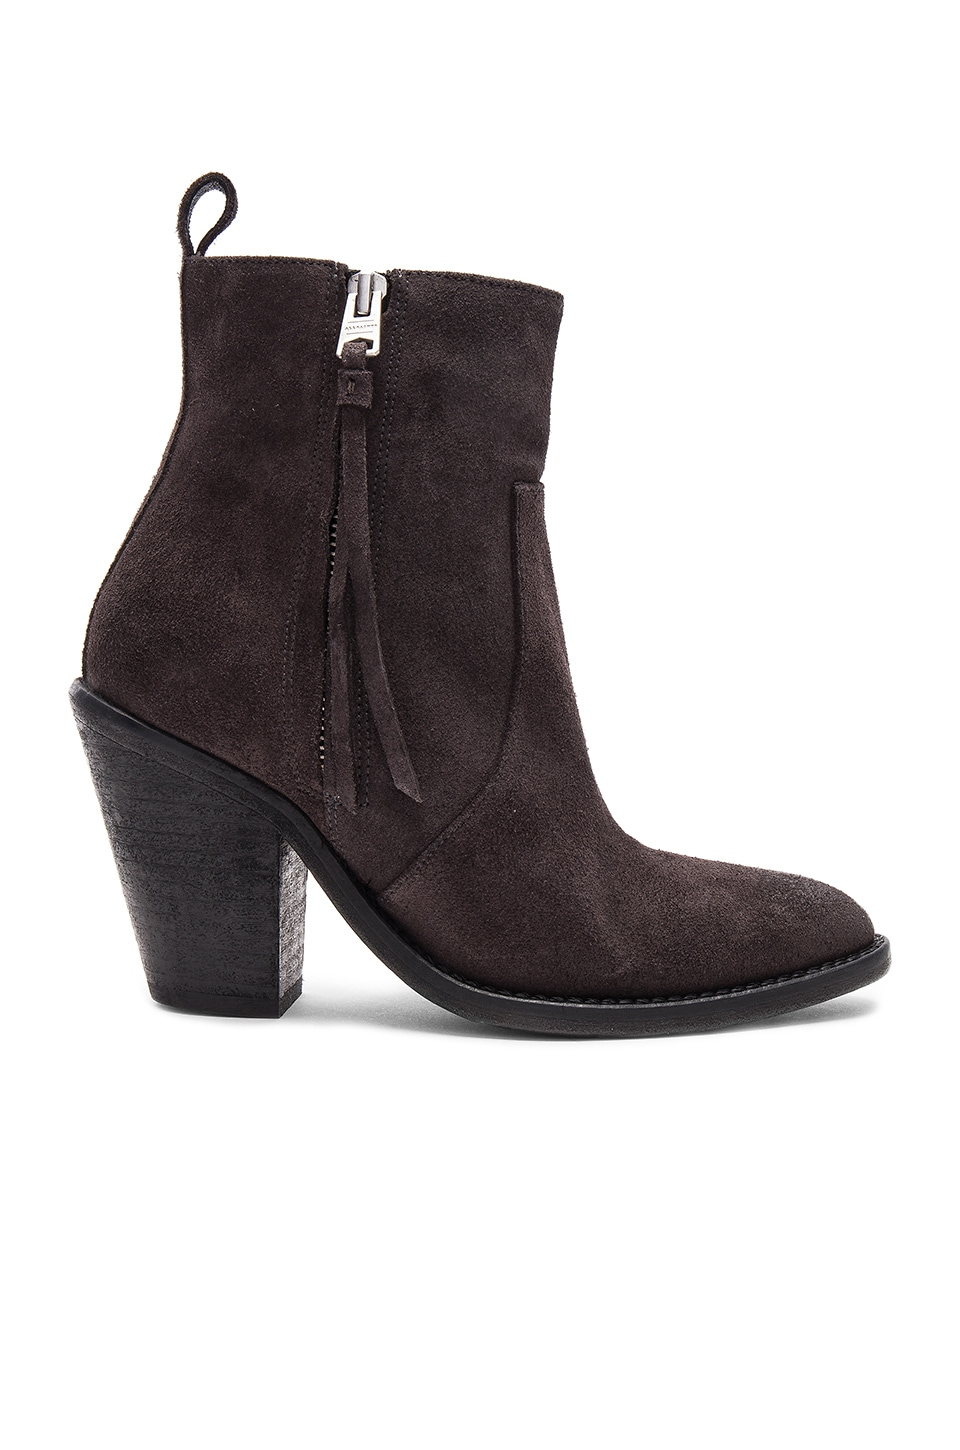 ALLSAINTS Lorna Bootie in Grey